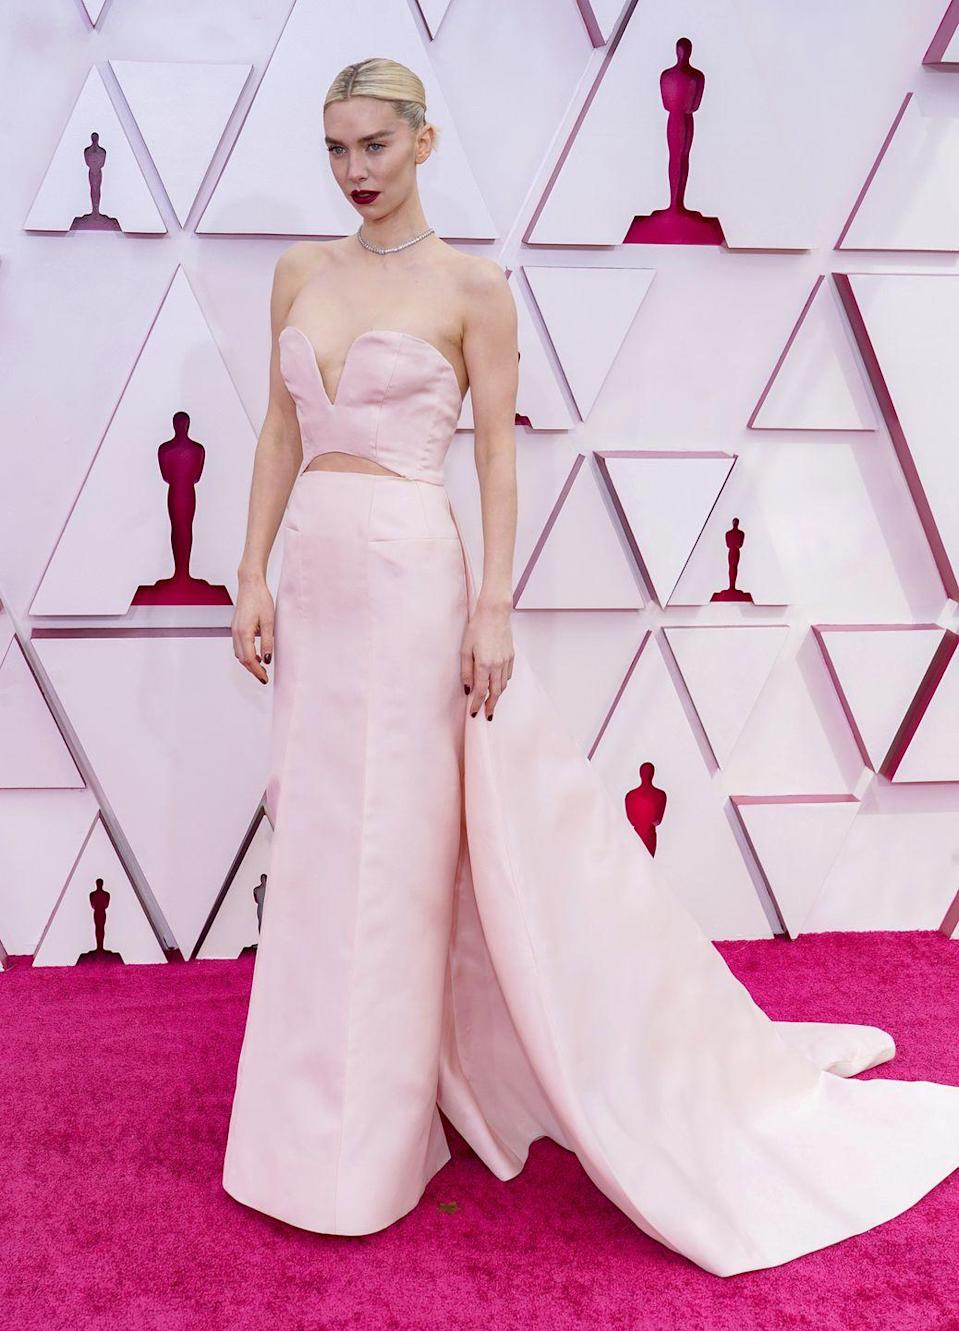 <p>Strapless gowns with cut-out panels were the big trend of the night, with British actress Vanessa Kirby also choosing one in the form of this pale pink Gucci number. Kirby looked beautiful in the dress, which featured a bodice, a column skirt and a long dramatic chain. She paired it with a dark lip, a slicked-back bun and a choker necklace by Cartier.</p>